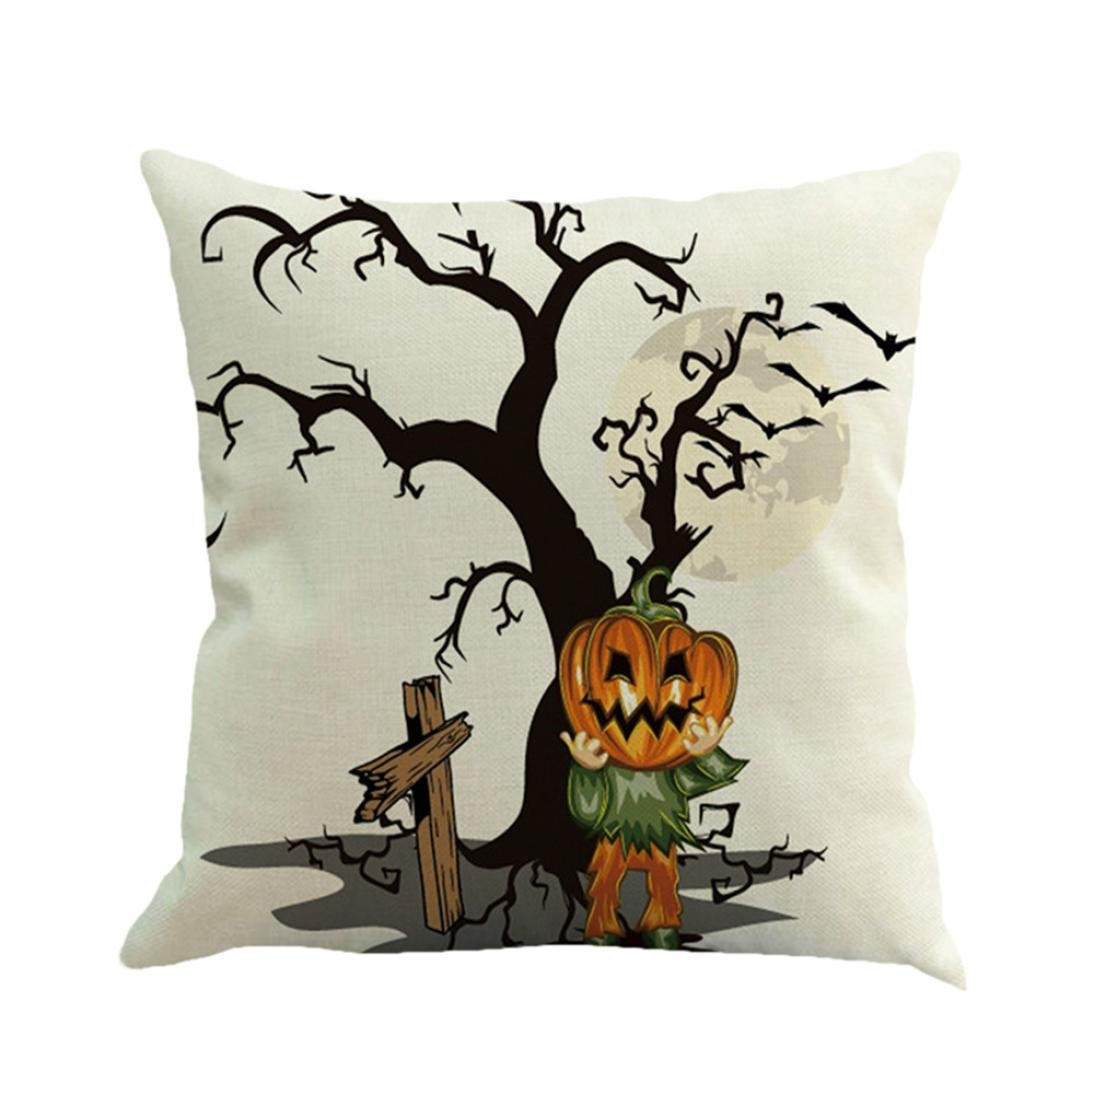 Gotd Vintage Halloween Pillow Covers Decorative Throw Pillow Case Cushion Happy Halloween Decorations Decor Clearance Indoor Outdoor Festive Party Supplies (Multicolor A) by Goodtrade8 (Image #1)